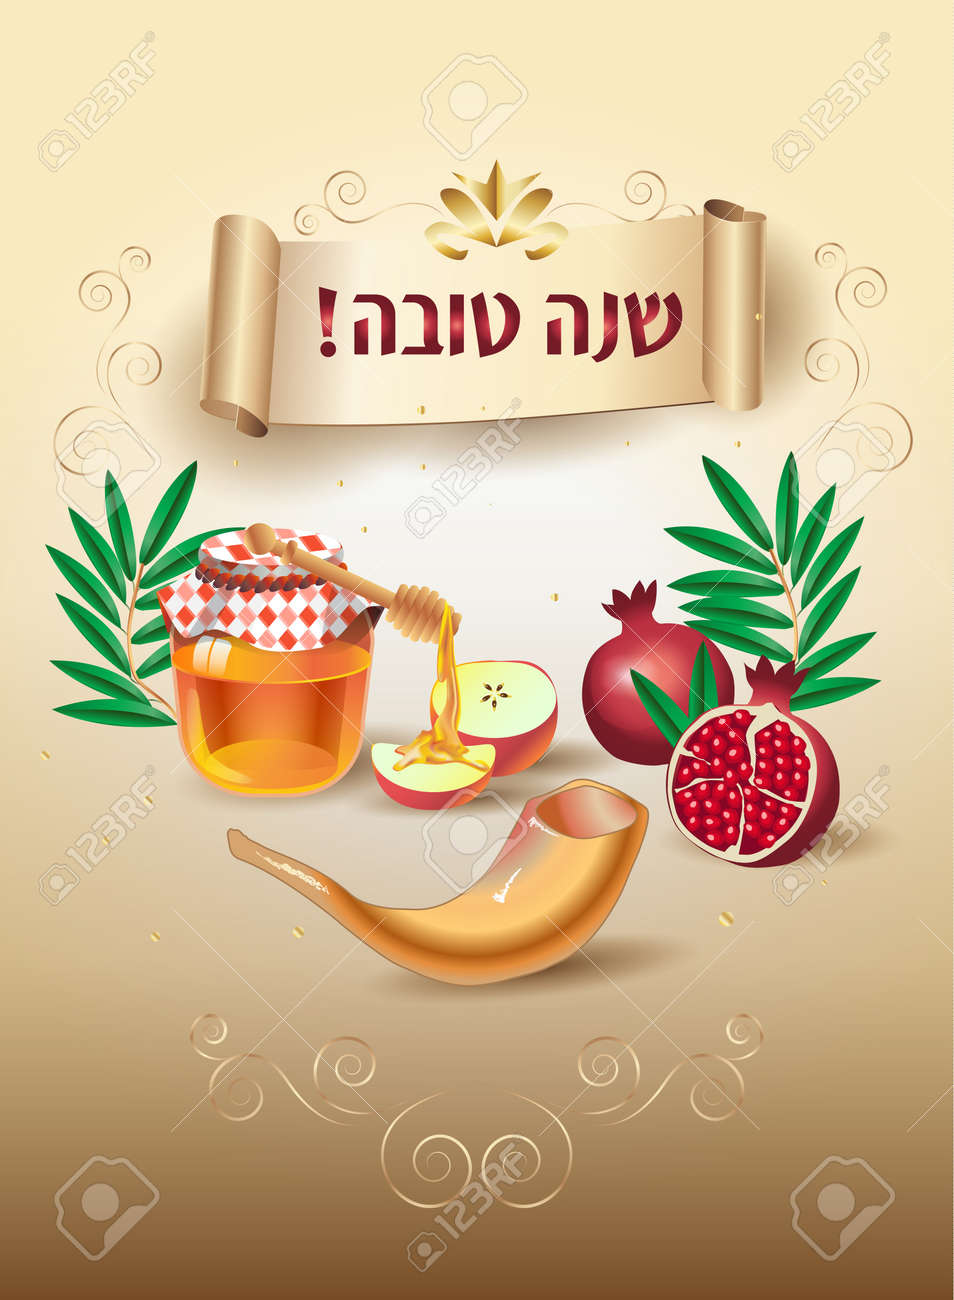 Shana tova hebrew text happy new year rosh hashanah jewish hebrew text happy new year rosh hashanah jewish holiday vintage greeting m4hsunfo